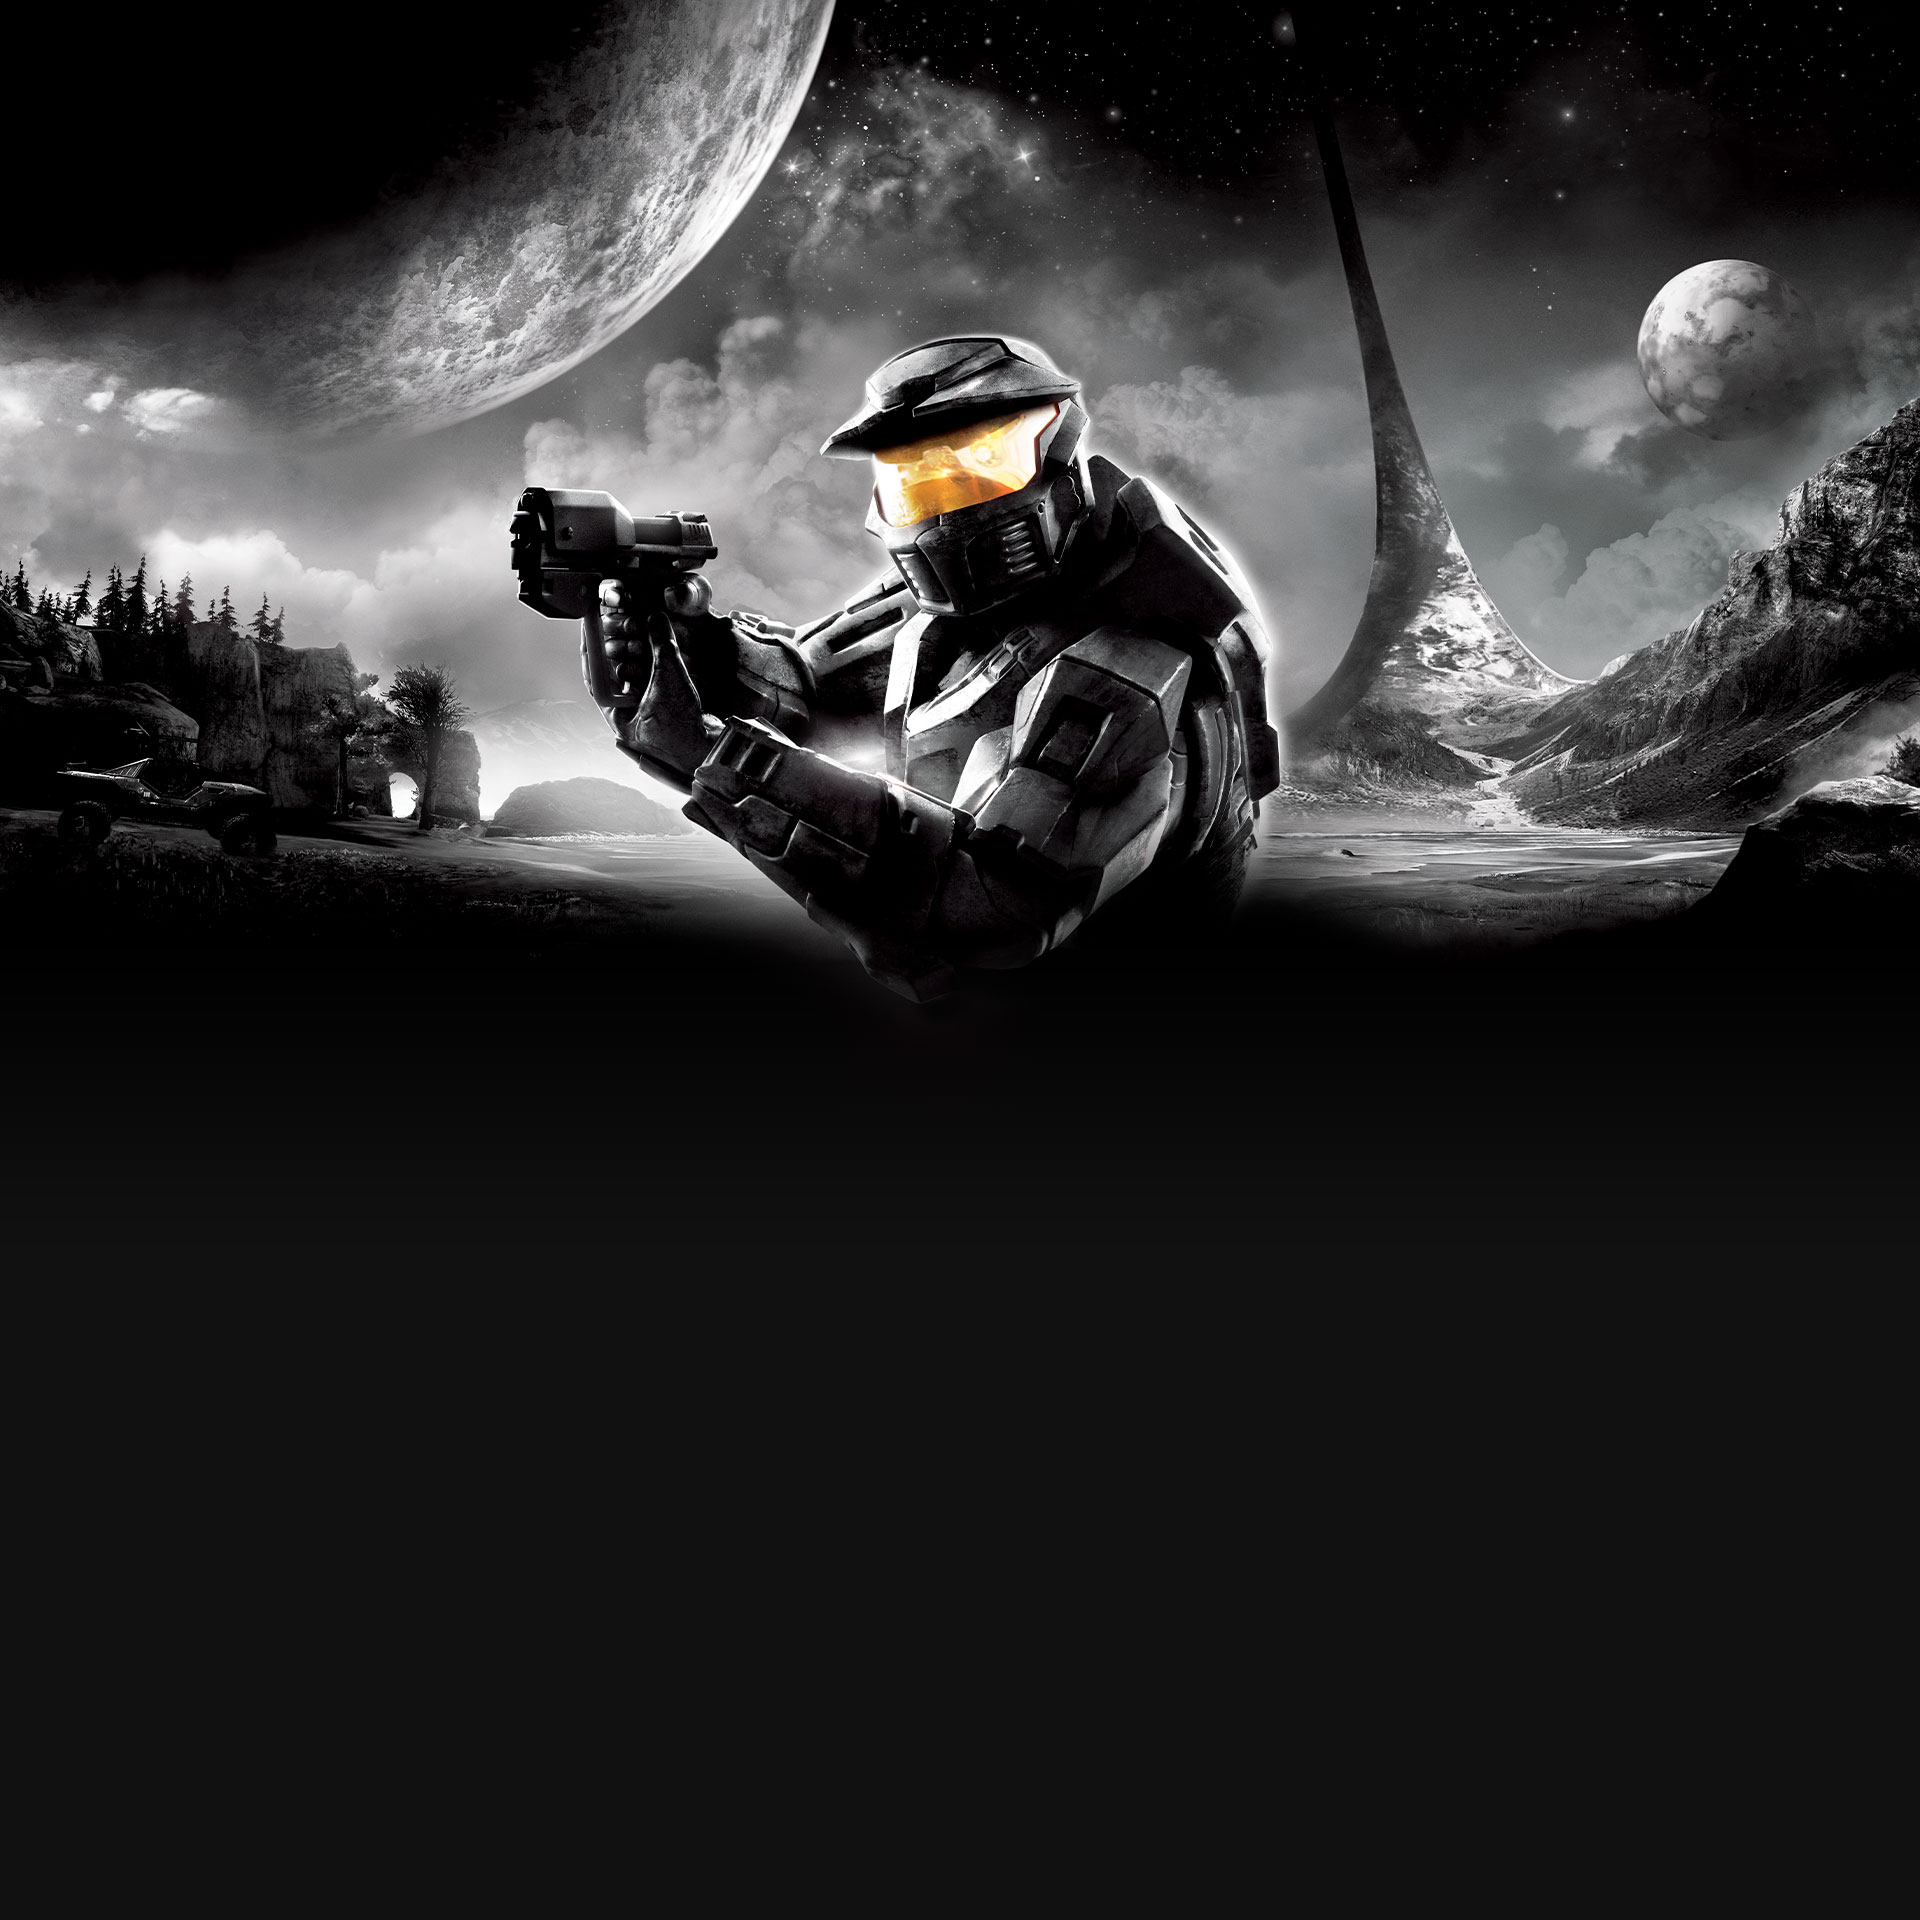 Halo: Combat Evolved Anniversary, Master Chief with pistol drawn on the surface of Halo